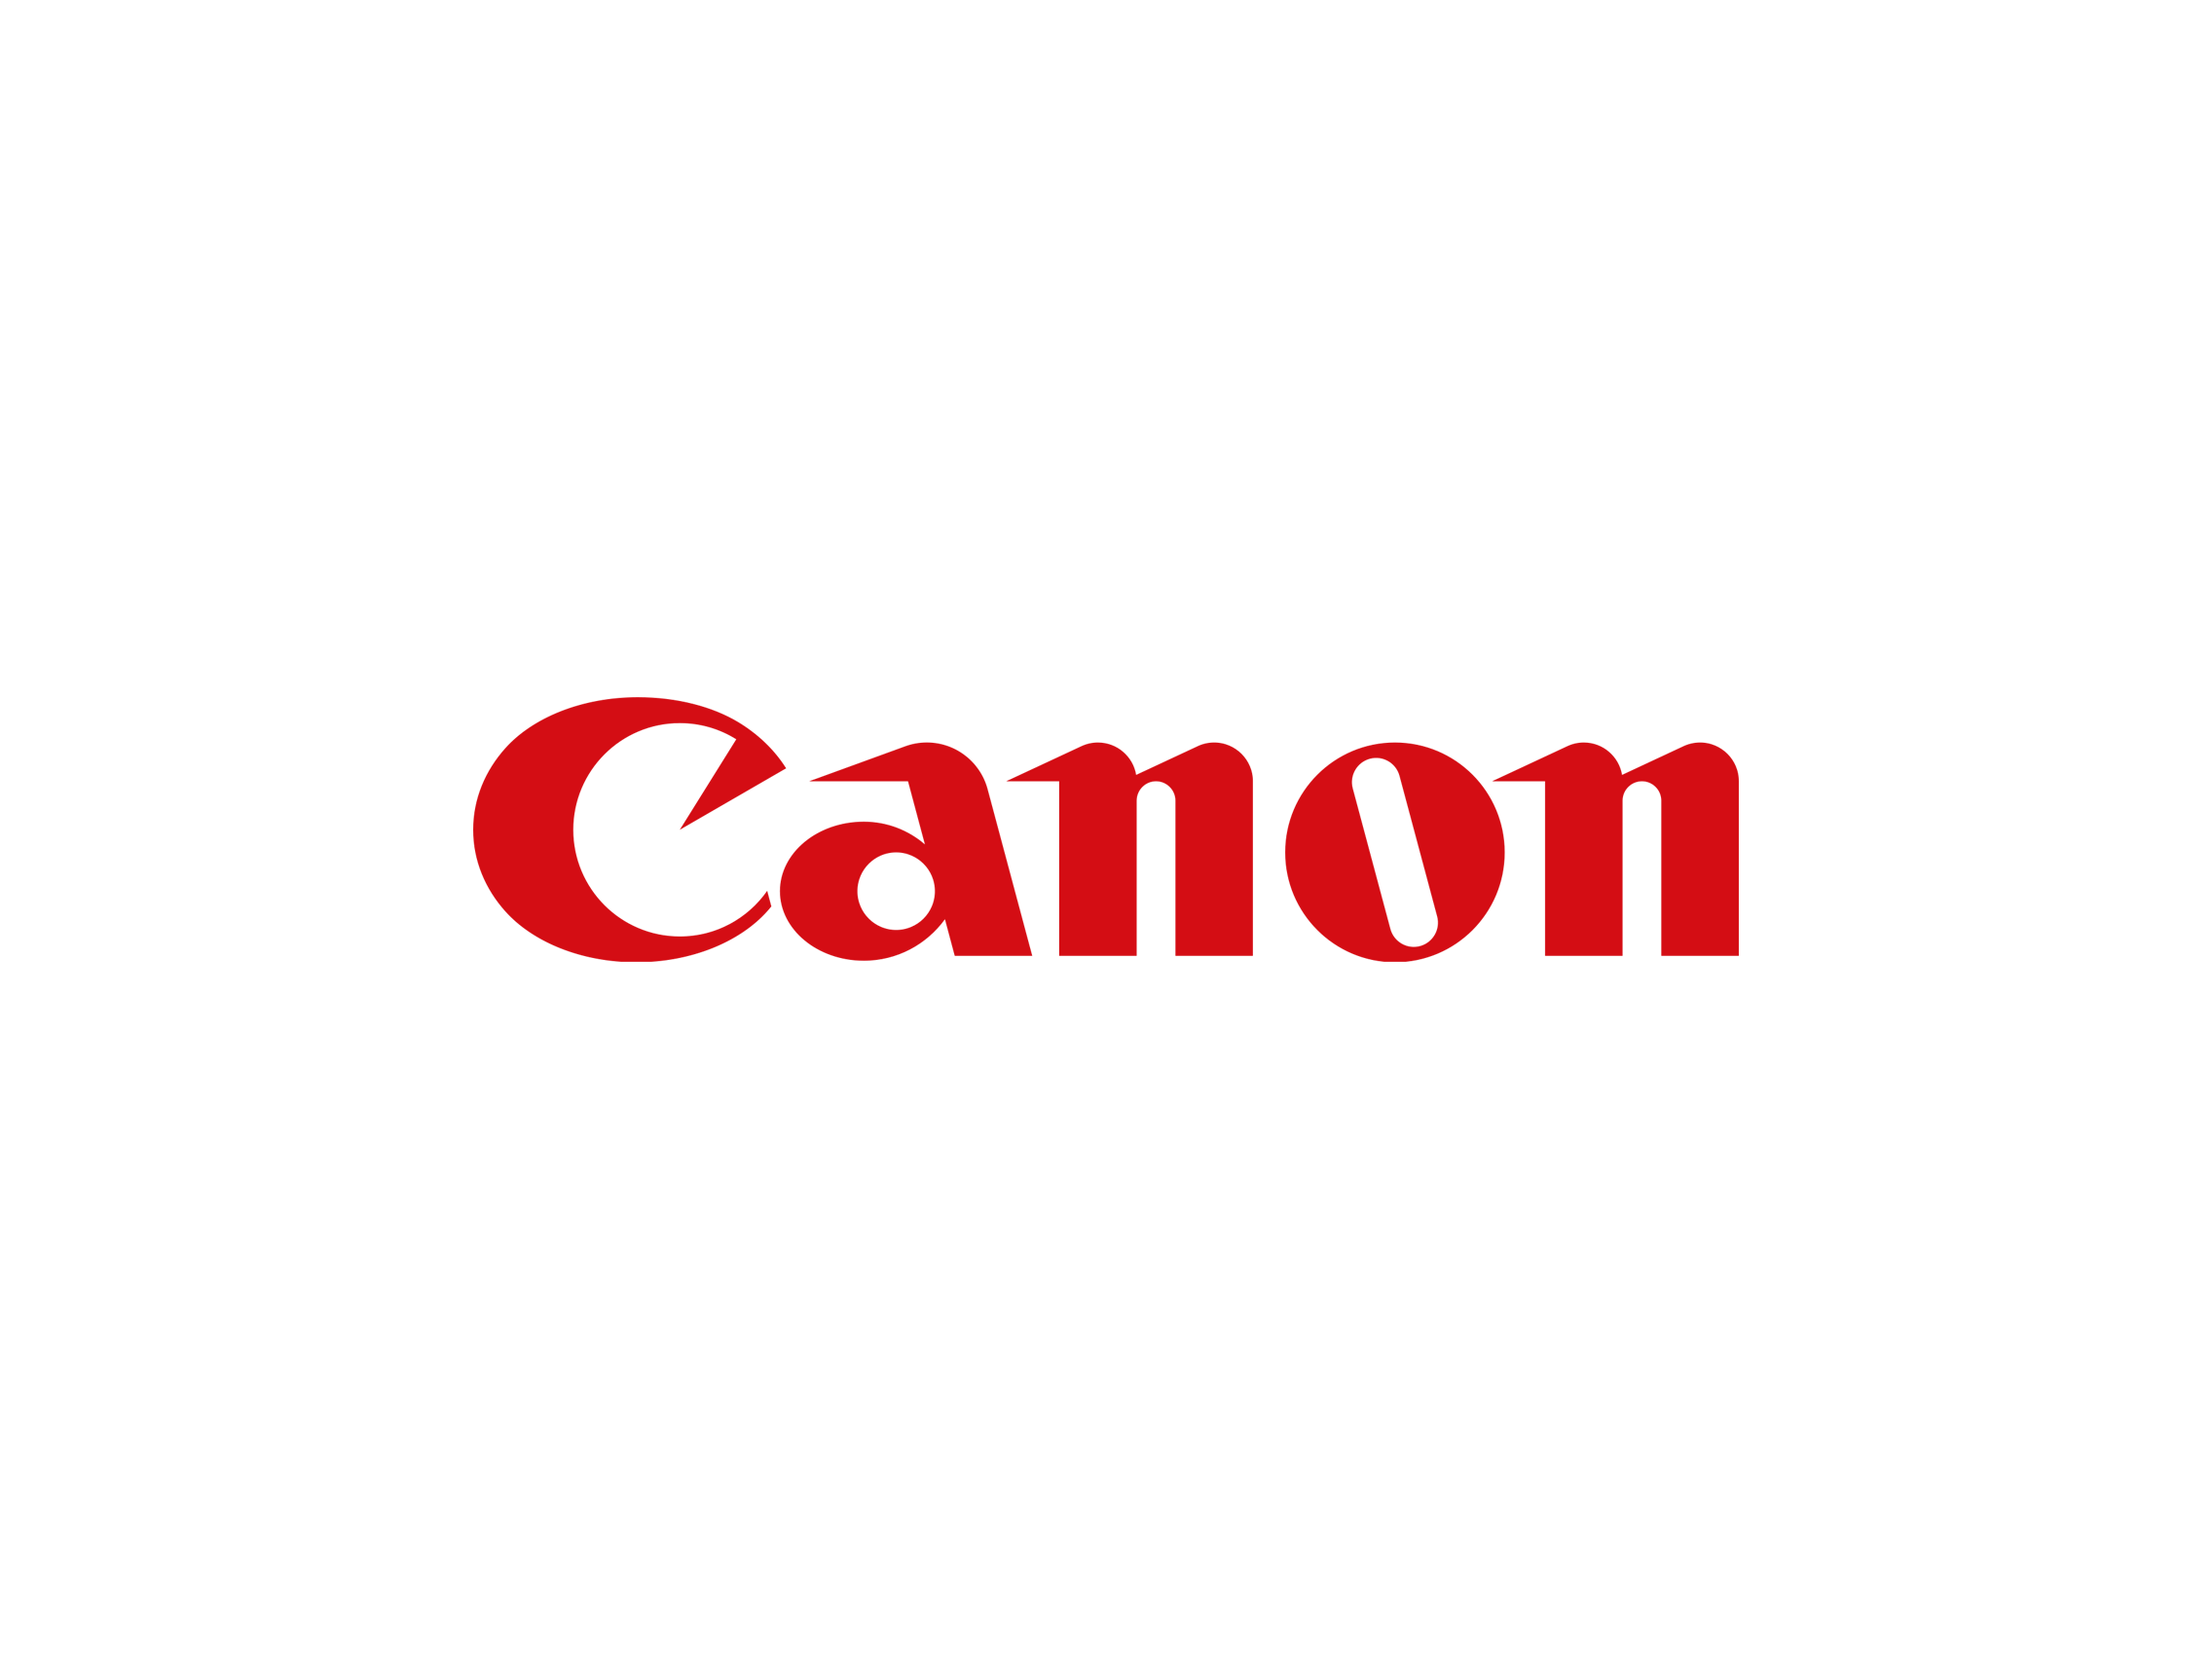 Canon-logo-wordmark